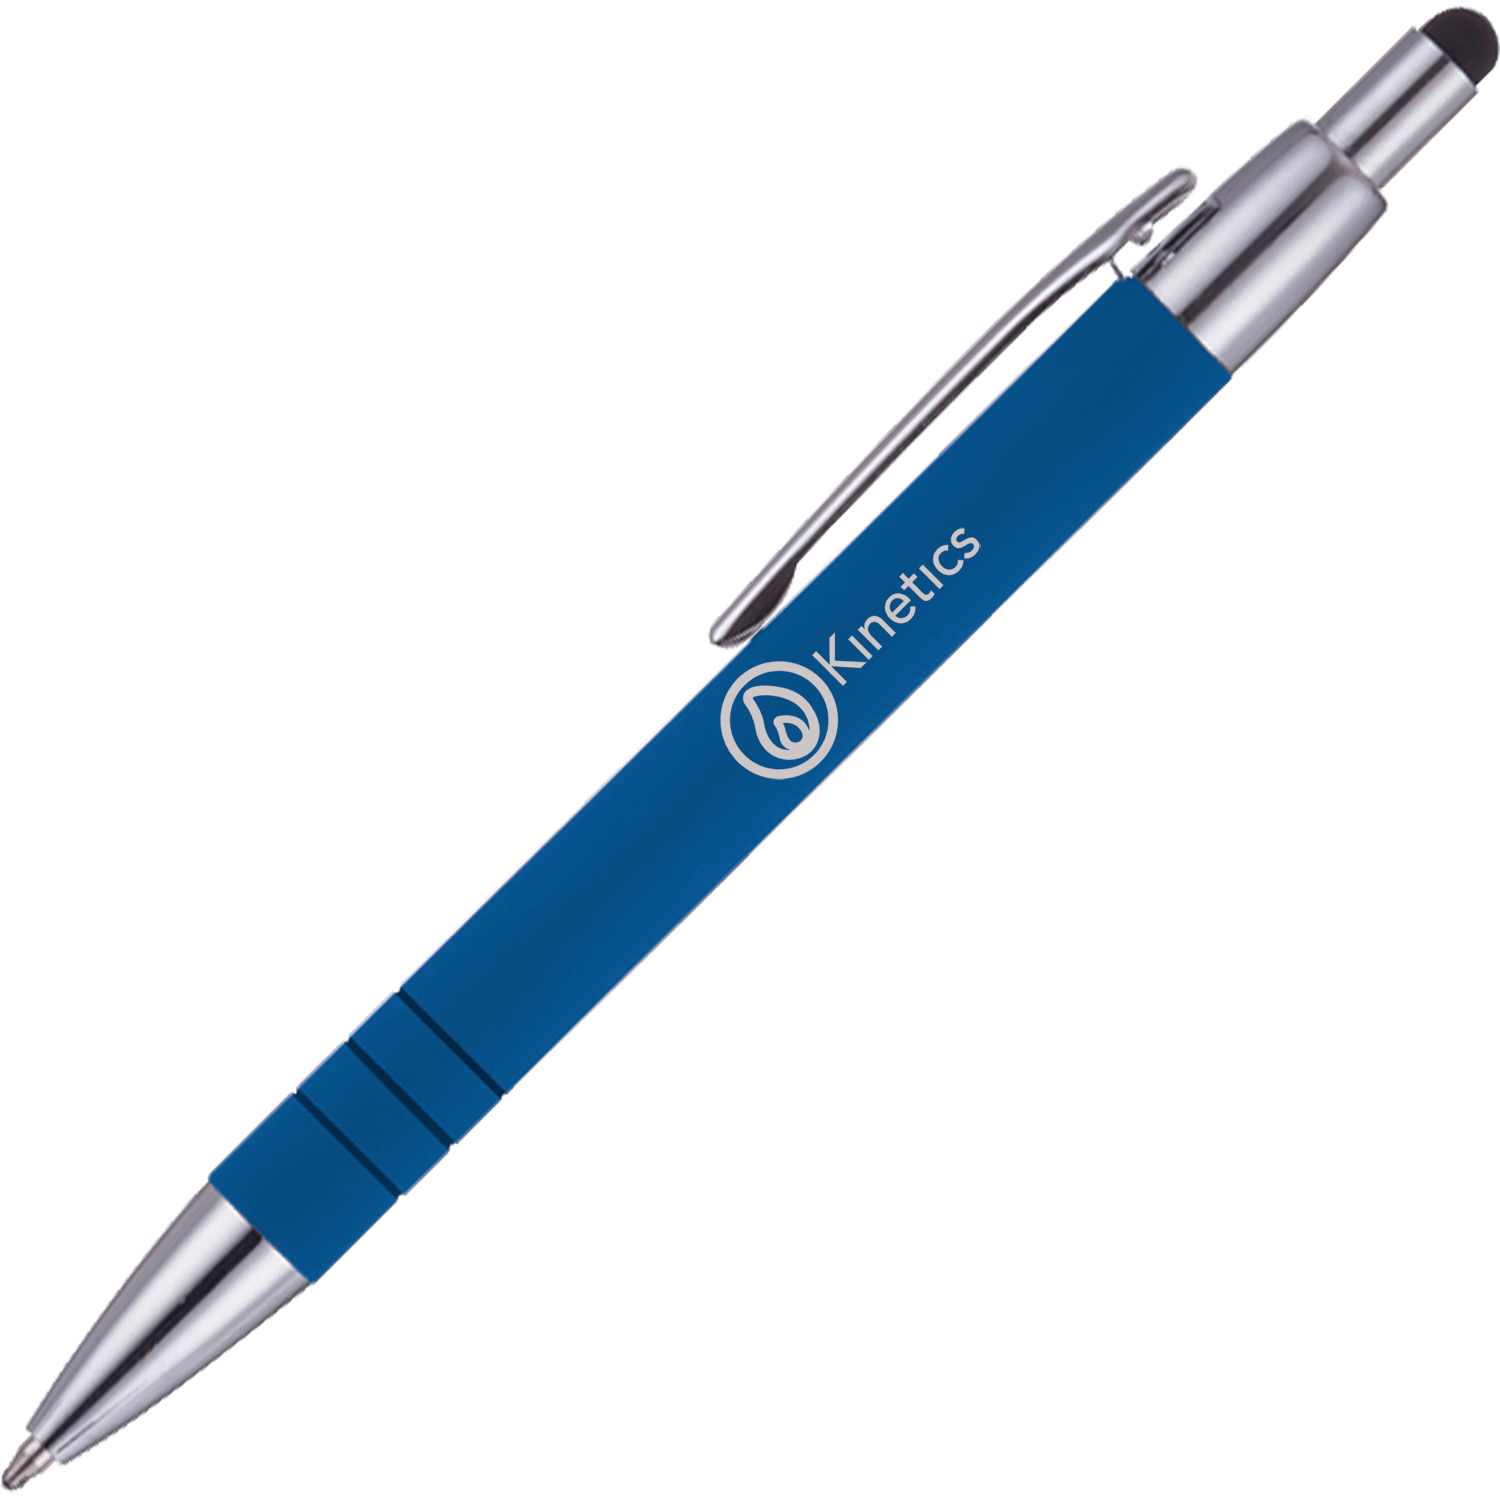 Engraved Soft Feel Stylus